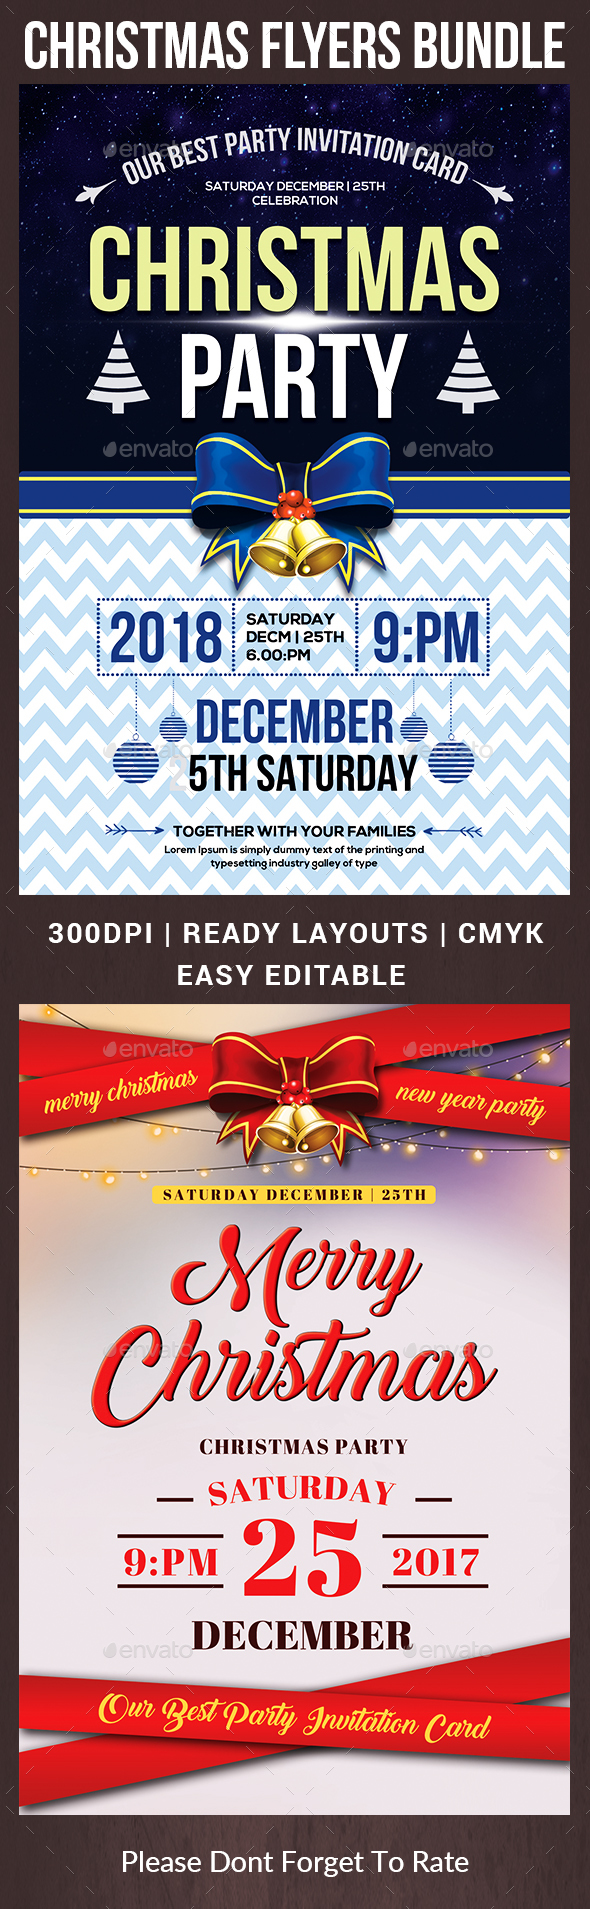 Christmas Flyers Bundle Template - Events Flyers